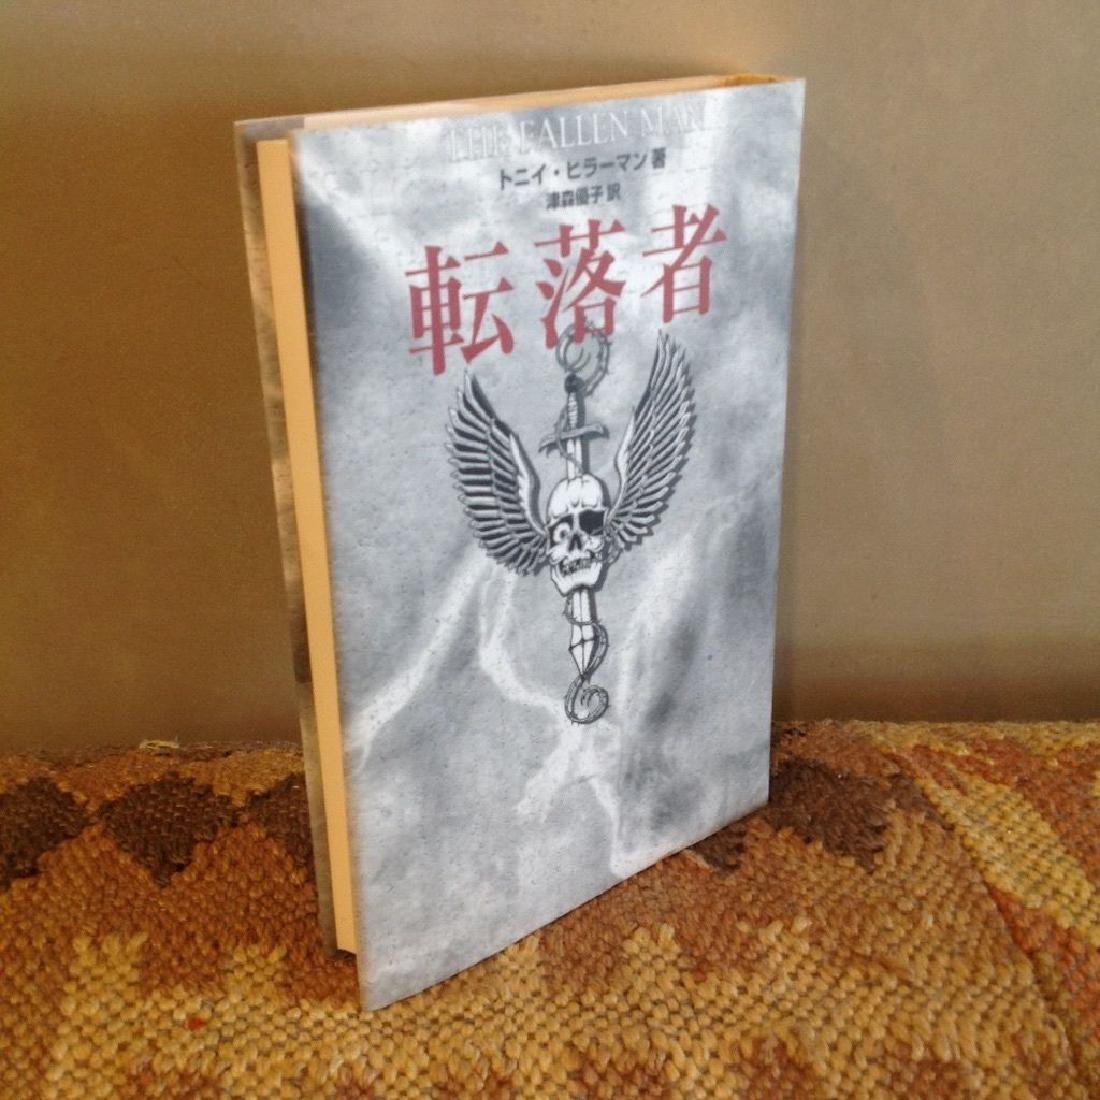 The Fallen Man - Japanese Import, Signed 1998